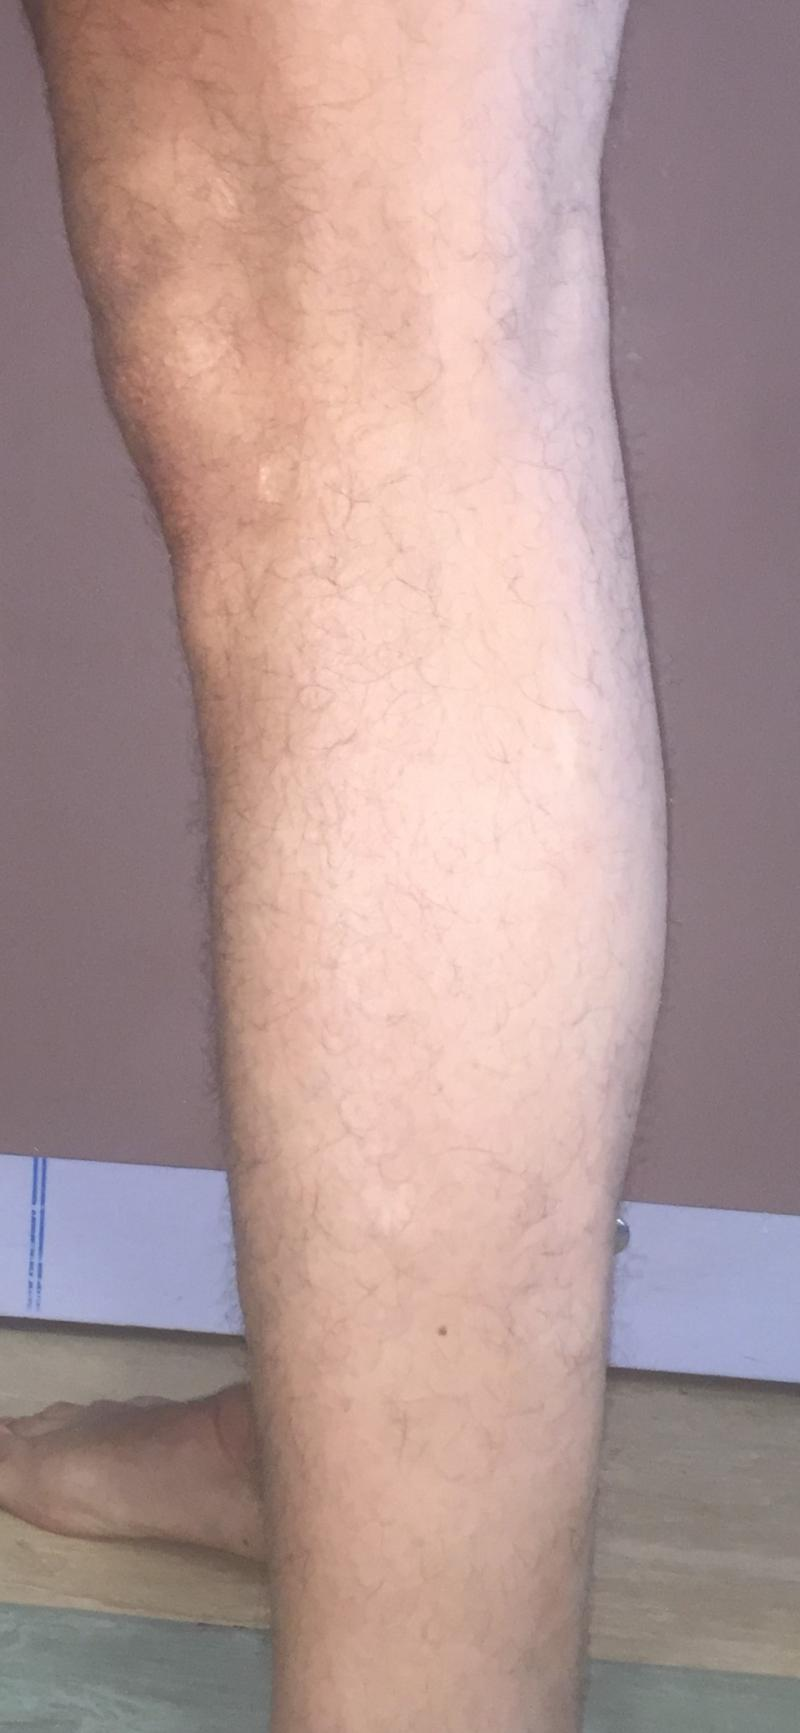 CalfImplants, Calf Enhancement, Leg enlargement, Fat graft, Best Aesthetic Surge